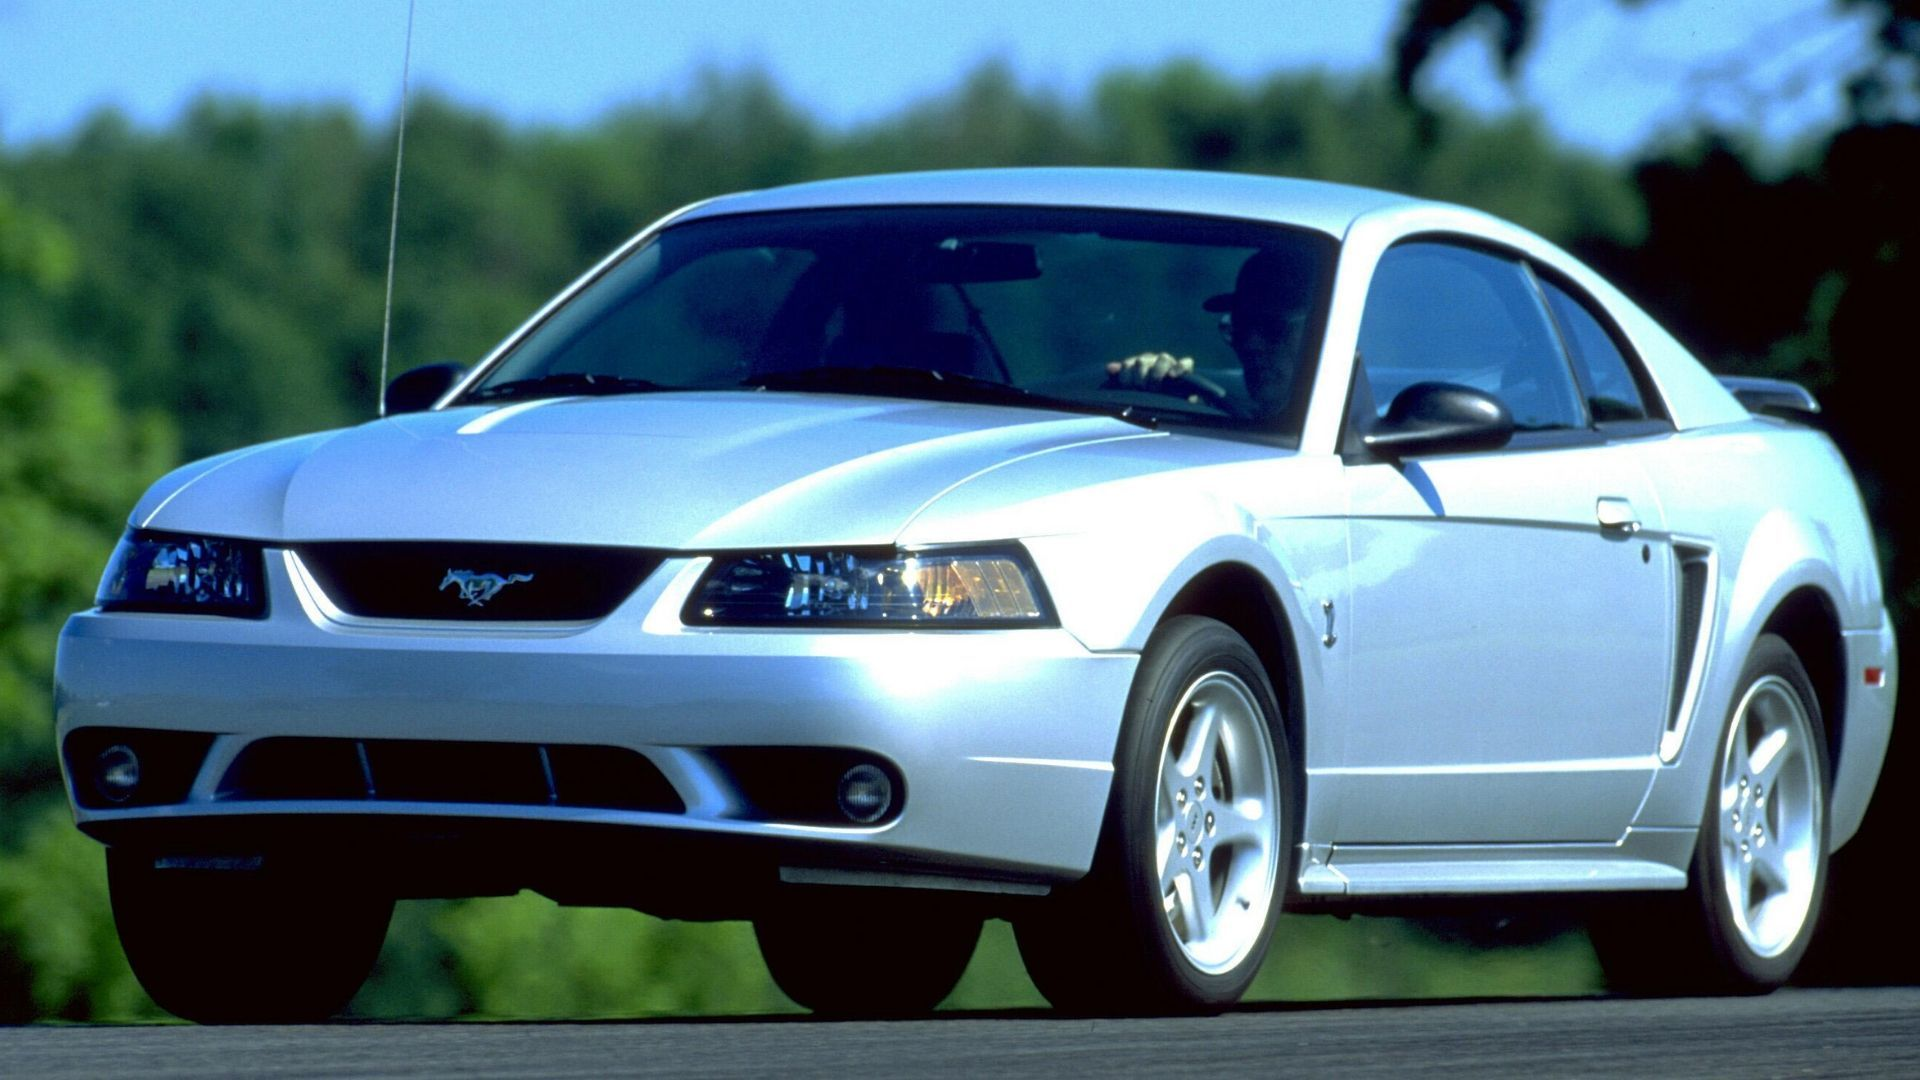 What's The Best Muscle Car For Under $25,000?